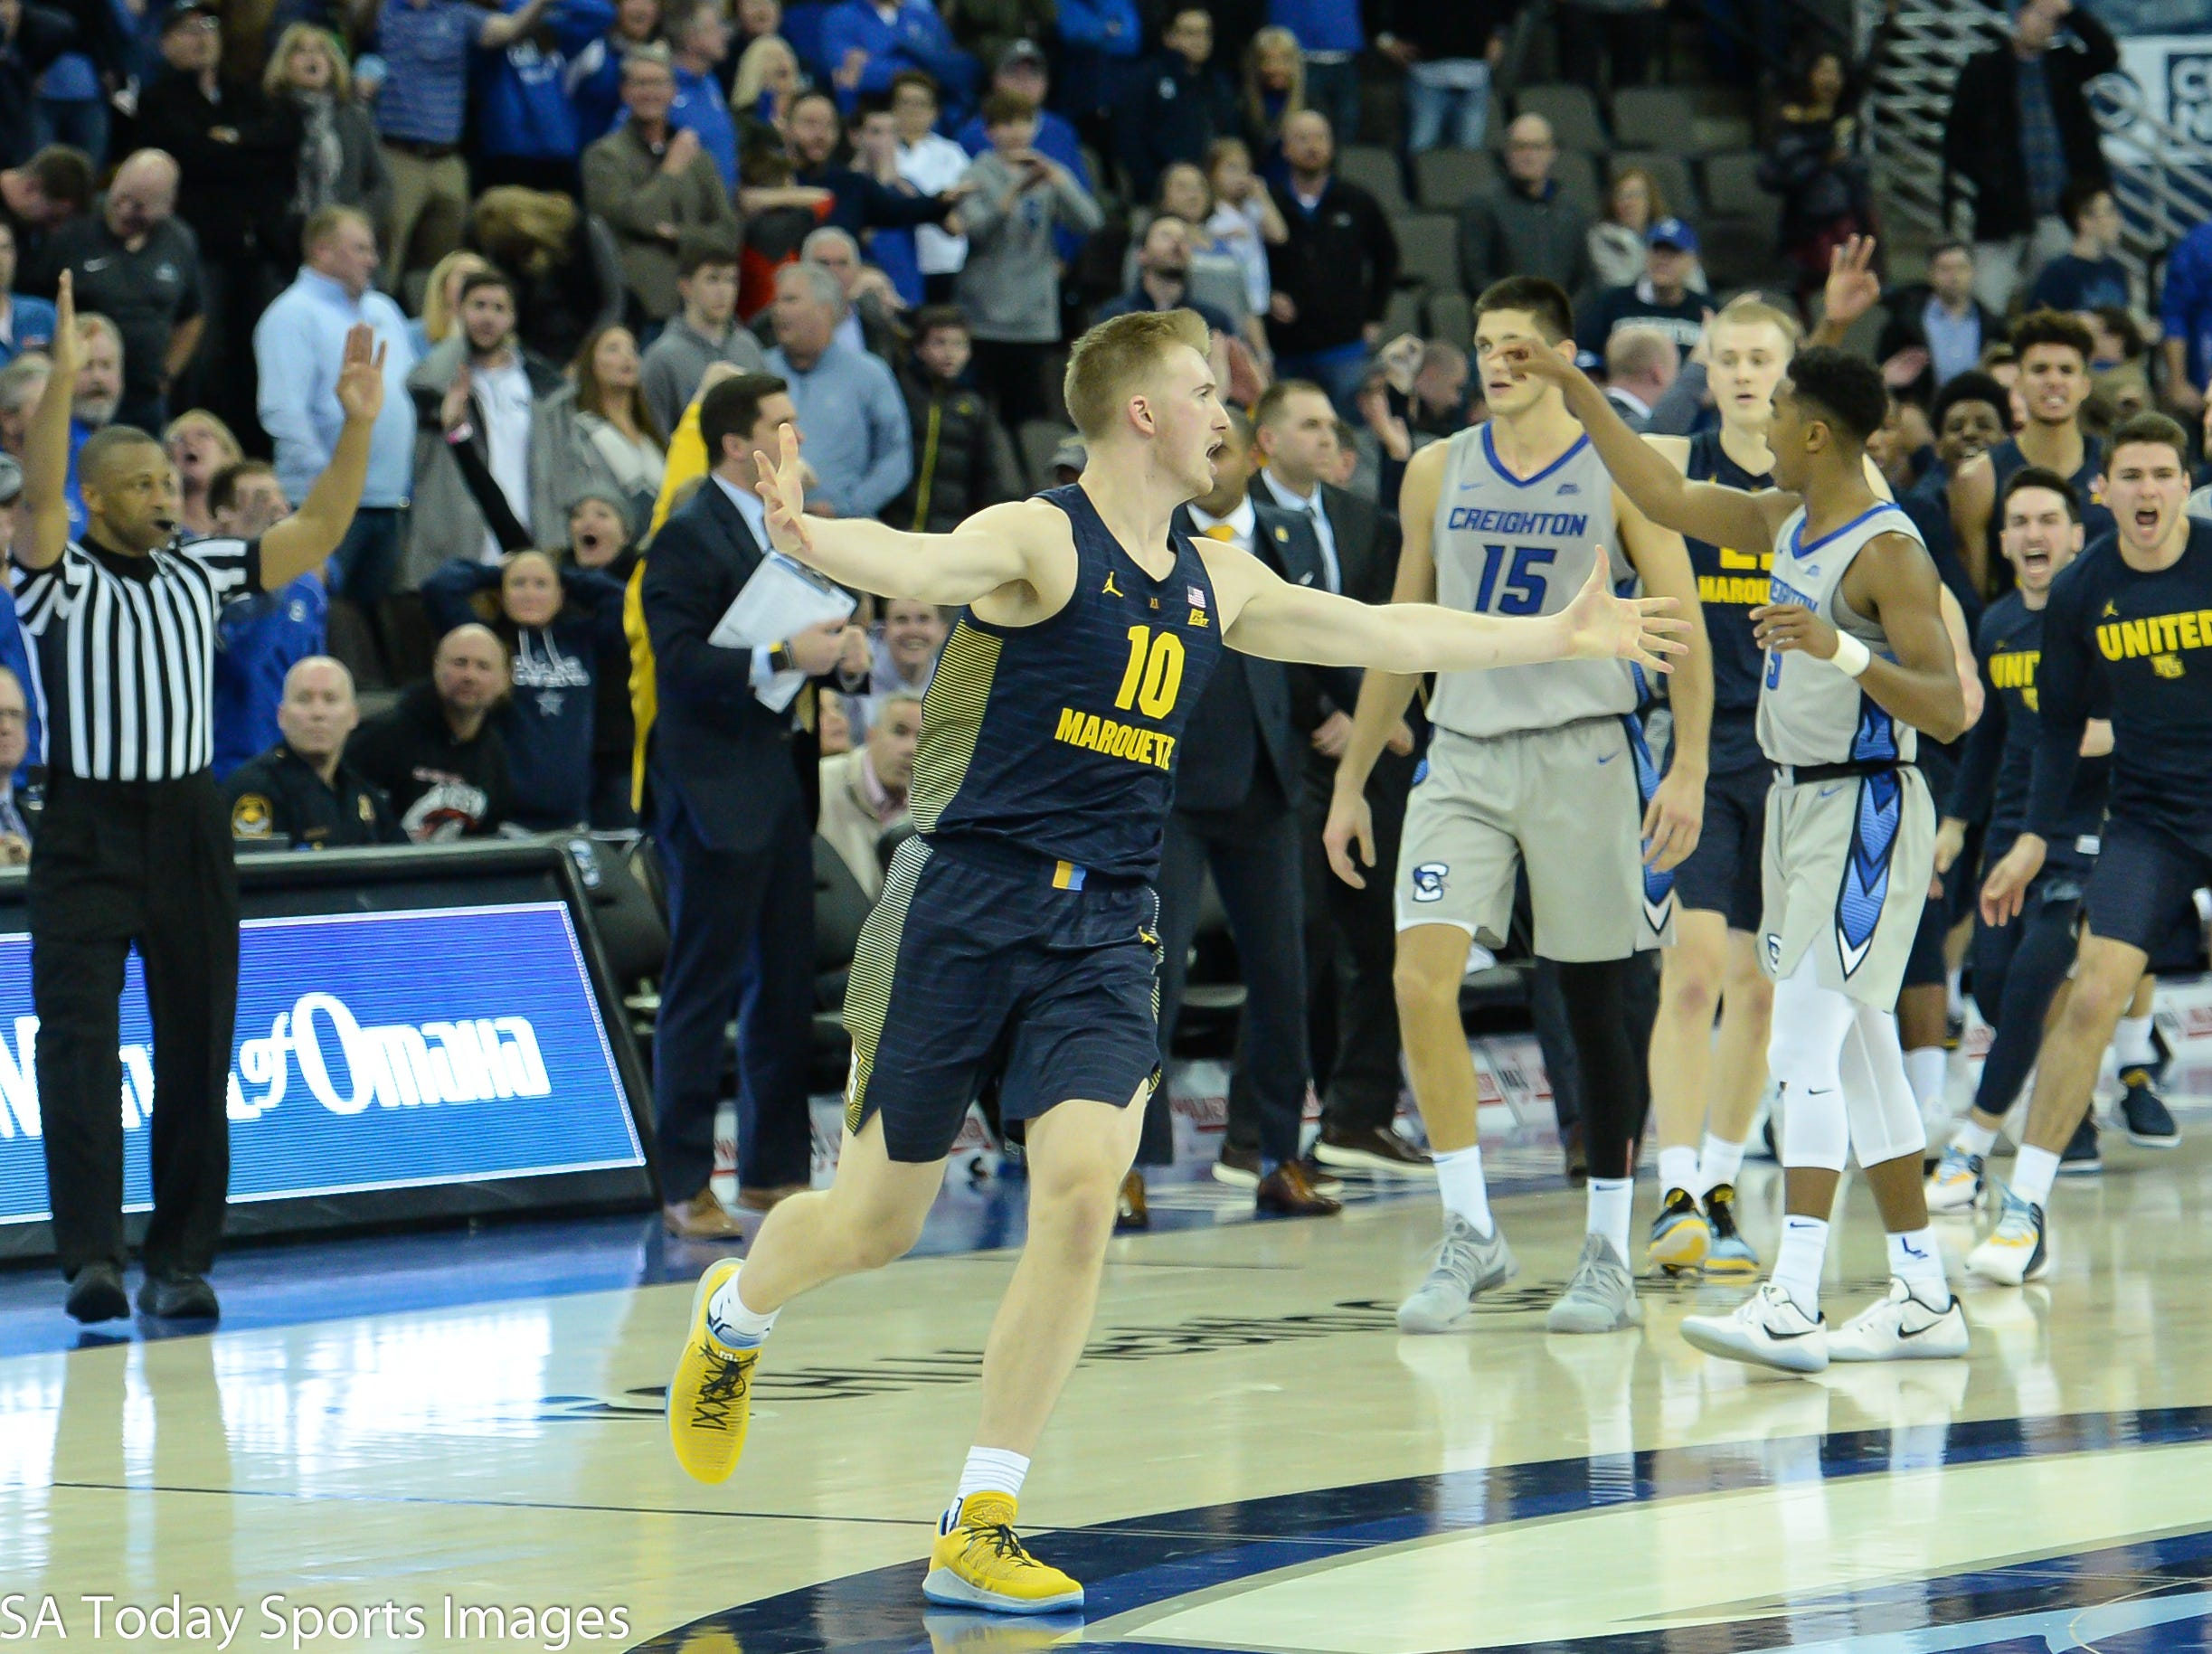 Jan 9, 2019; Omaha, NE, USA; Marquette Golden Eagles forward Sam Hauser (10) celebrates a last second shot to tie the game against the Creighton Bluejays in the second half at CHI Health Center Omaha. Mandatory Credit: Steven Branscombe-USA TODAY Sports